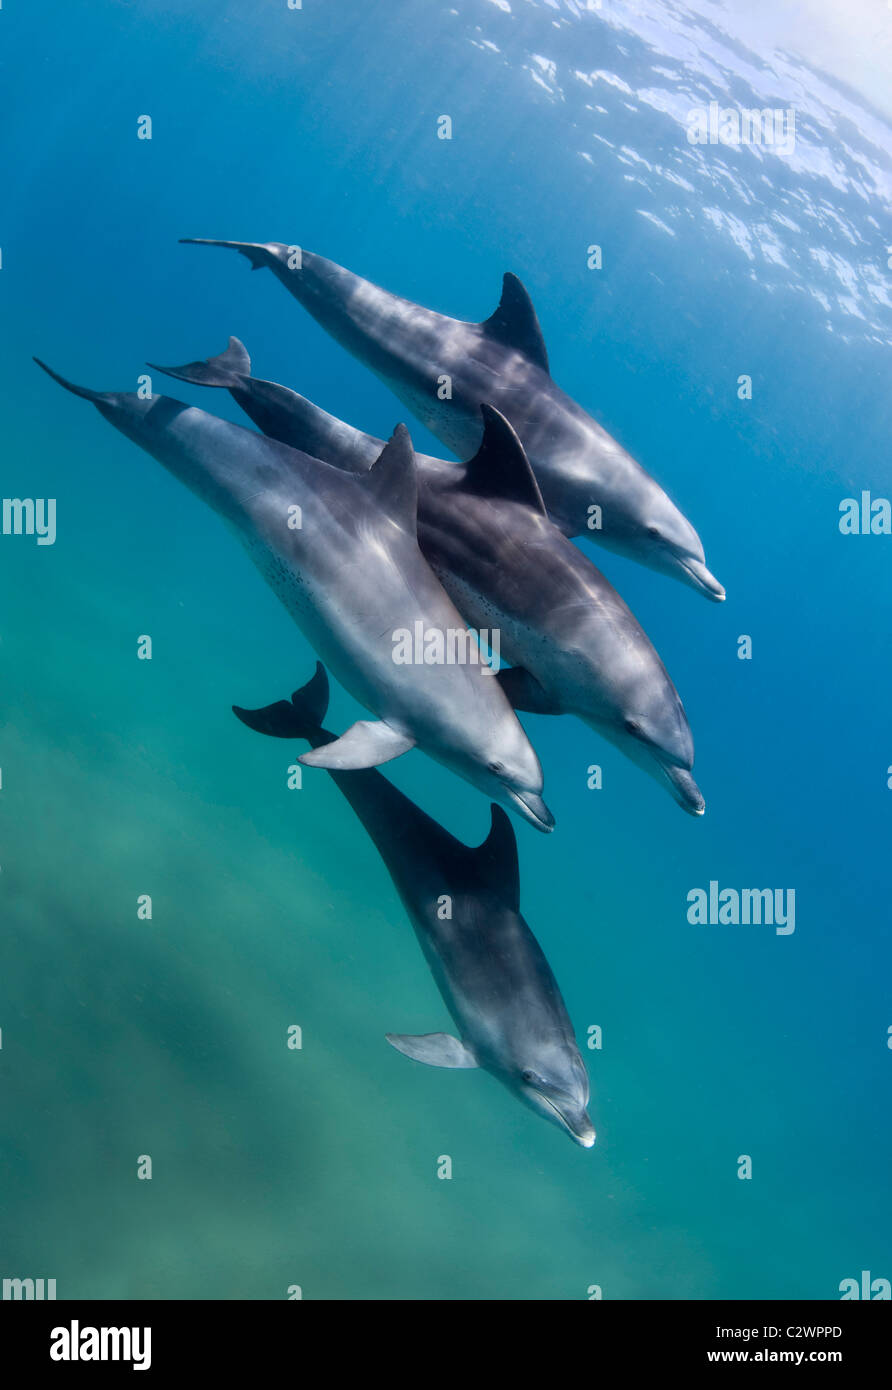 Bottle nose dolphins, Sodwana Bay, South Africa, Indian Ocean - Stock Image